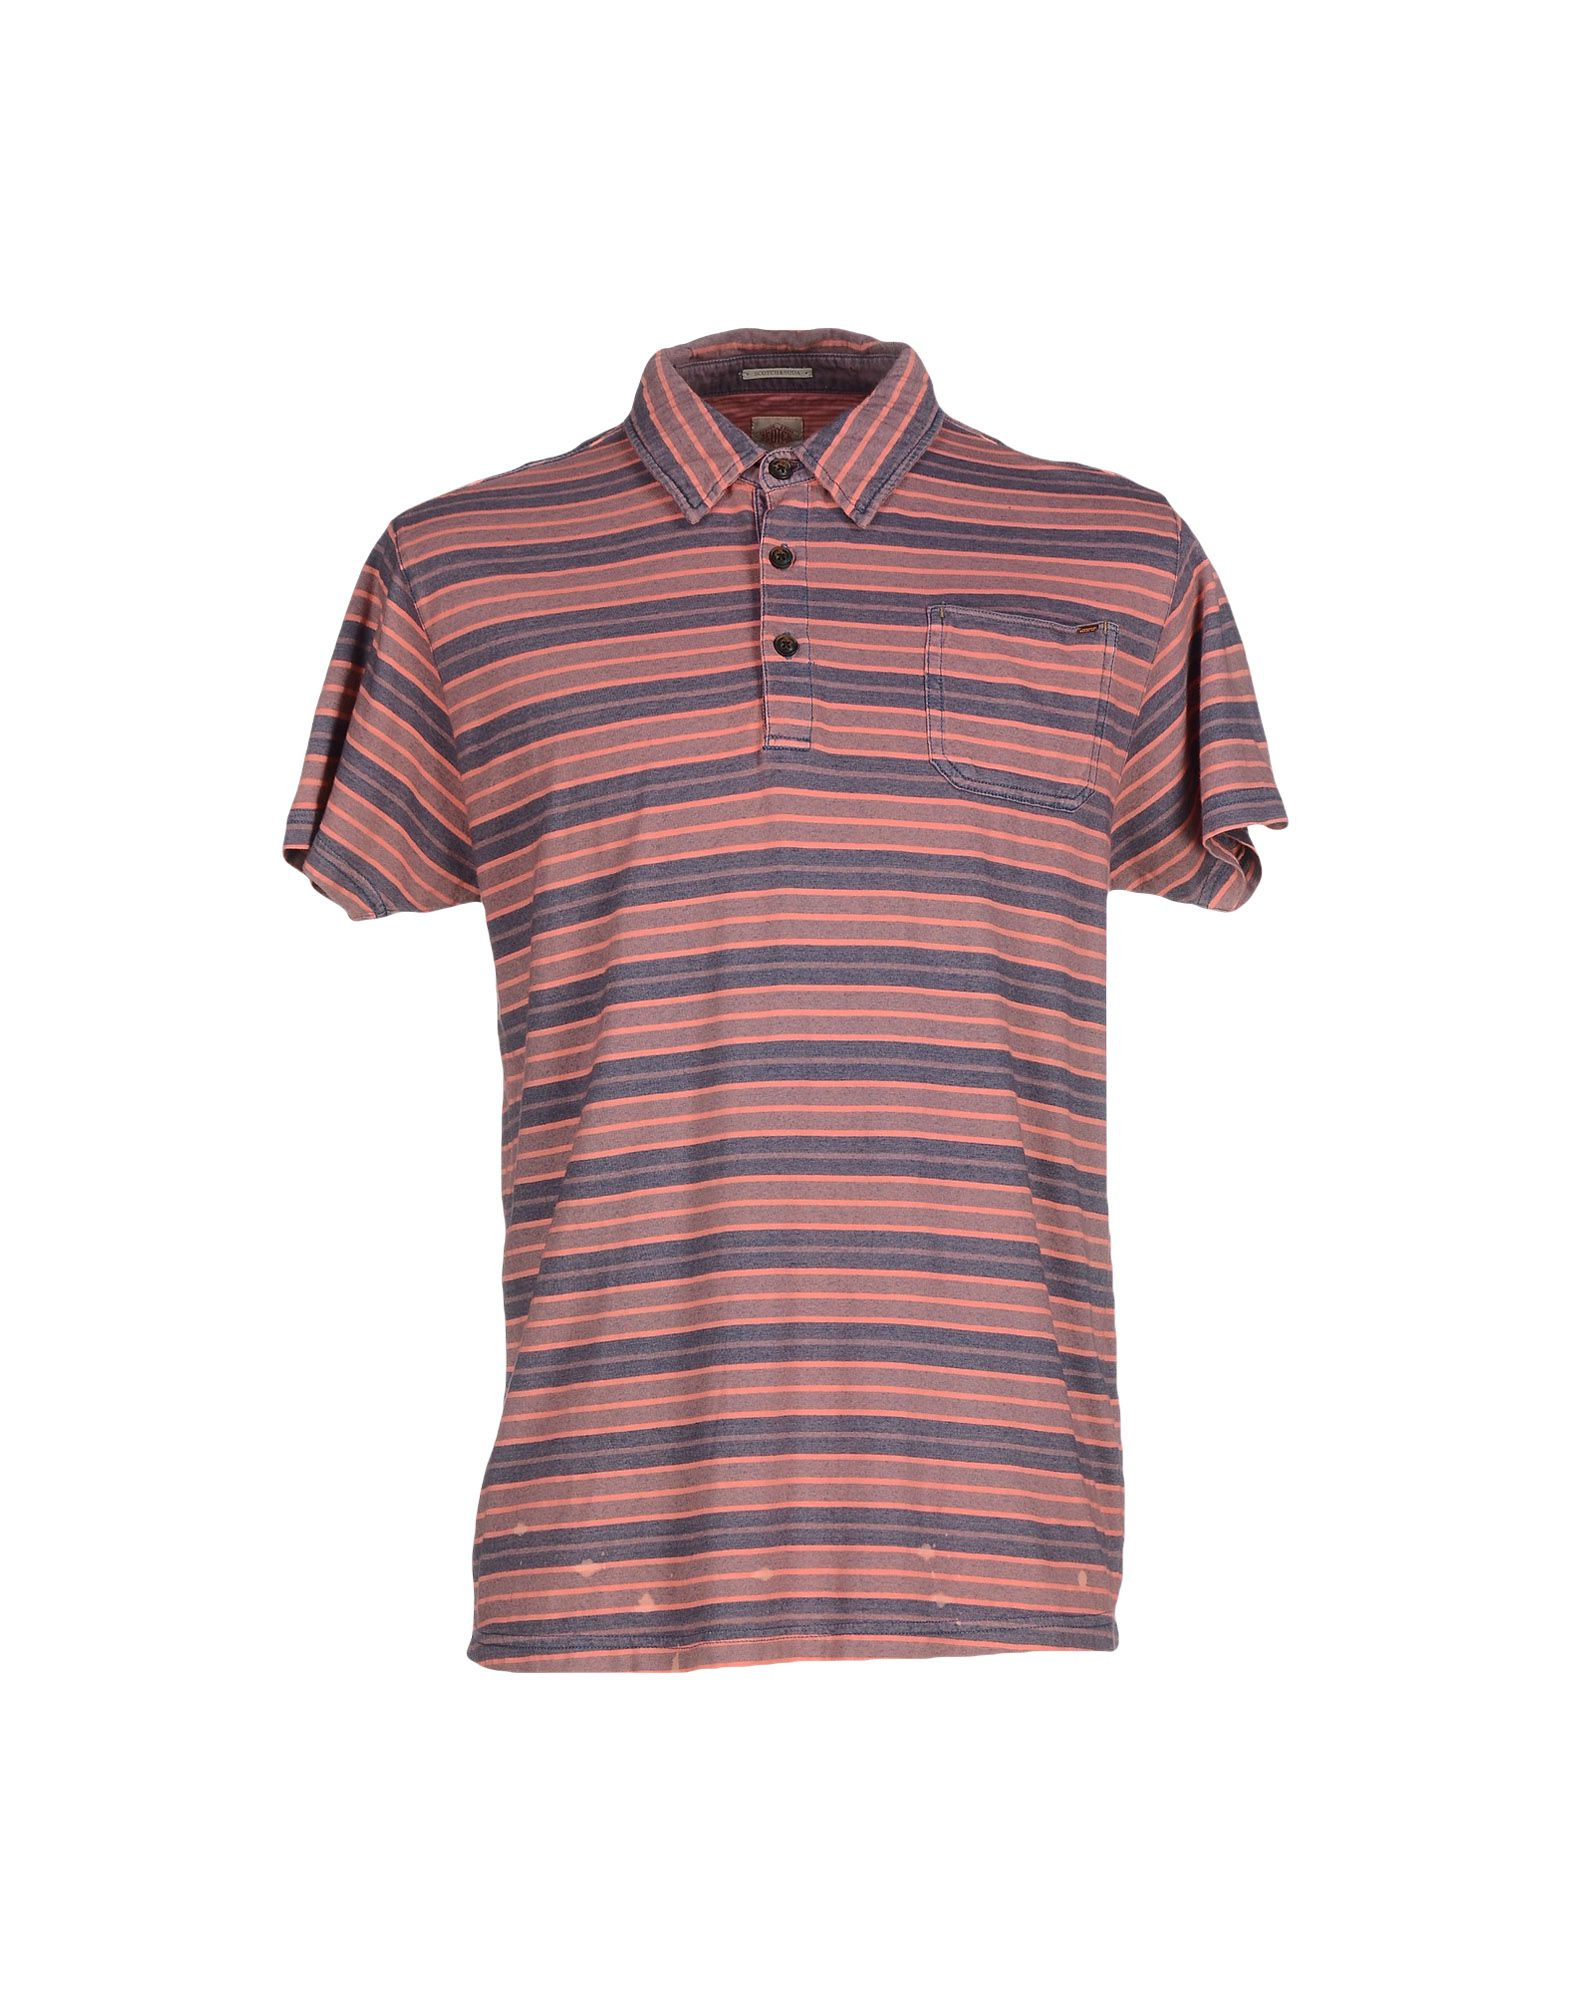 lyst scotch soda polo shirt in pink for men. Black Bedroom Furniture Sets. Home Design Ideas